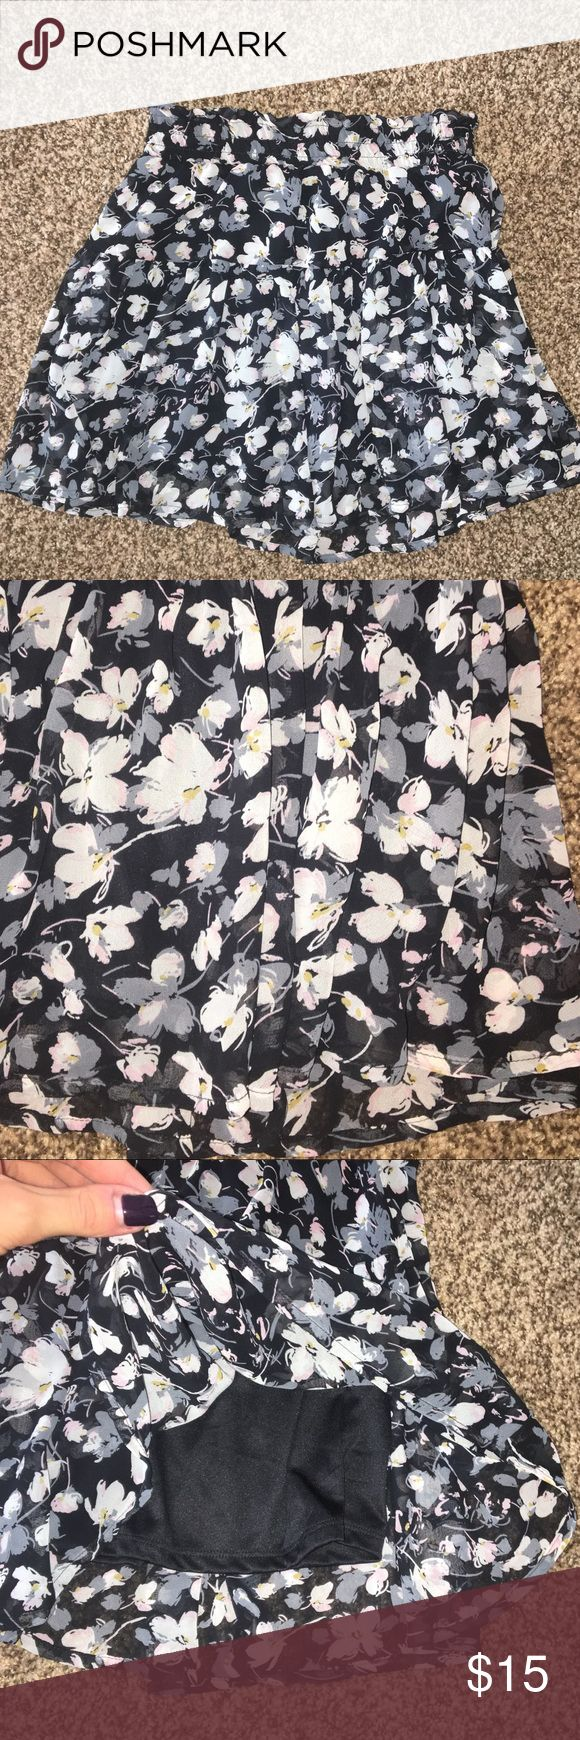 MUST GO Floral Skater Mini Skirt: XS MUST GO SEND ME YOUR LOWEST OFFER!!!  Need  to clear out my closet .  Adorable floral mini skirt!  Mostly black and gray with white/cream and a small amount of muted/light baby pink and gray/blue. Loose/fit and flare/skater syle. Nice chiffon/blouse type fabric. Fully lined (pictured)!  Has a cinched waist band that has a good amount of stretch (could fit XS or Small). Excellent condition looks perfect! Skirts